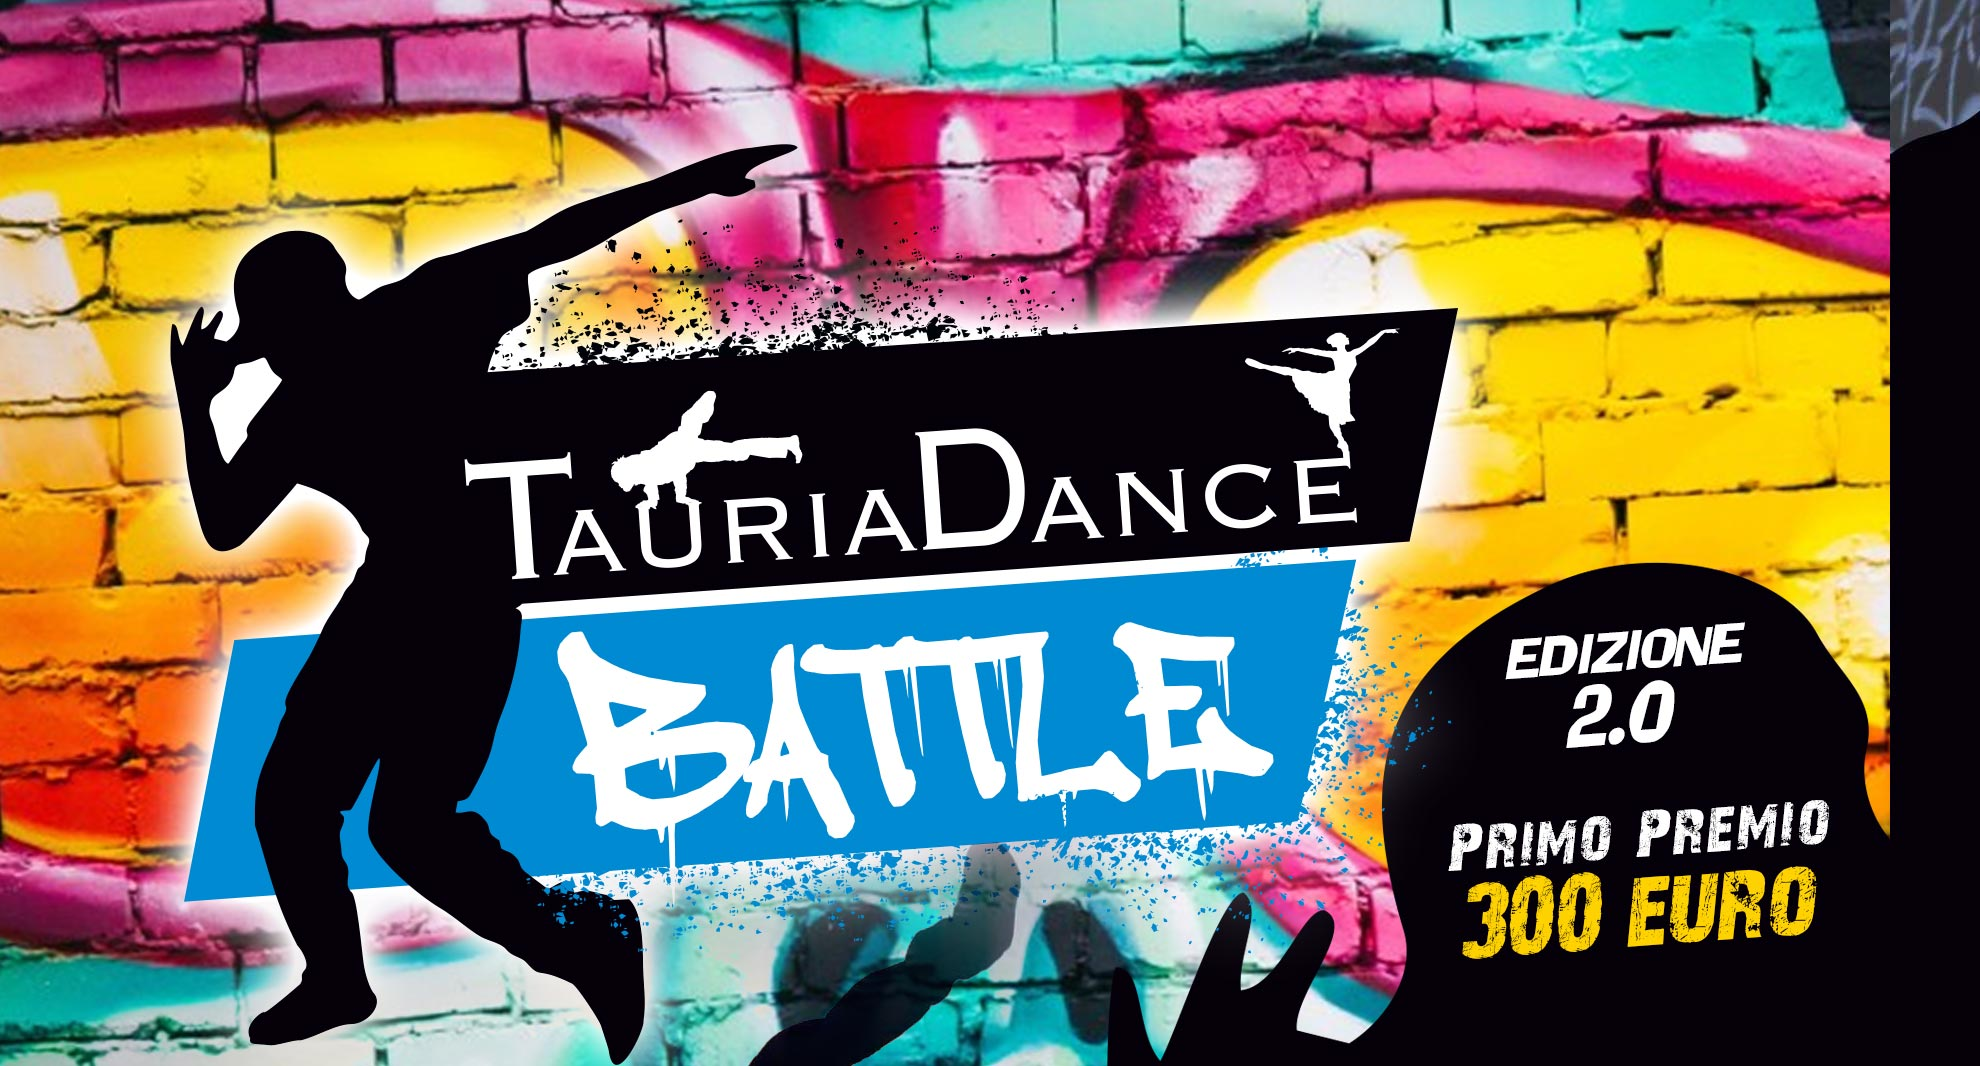 Tauriadance battle seconda edizione 2019